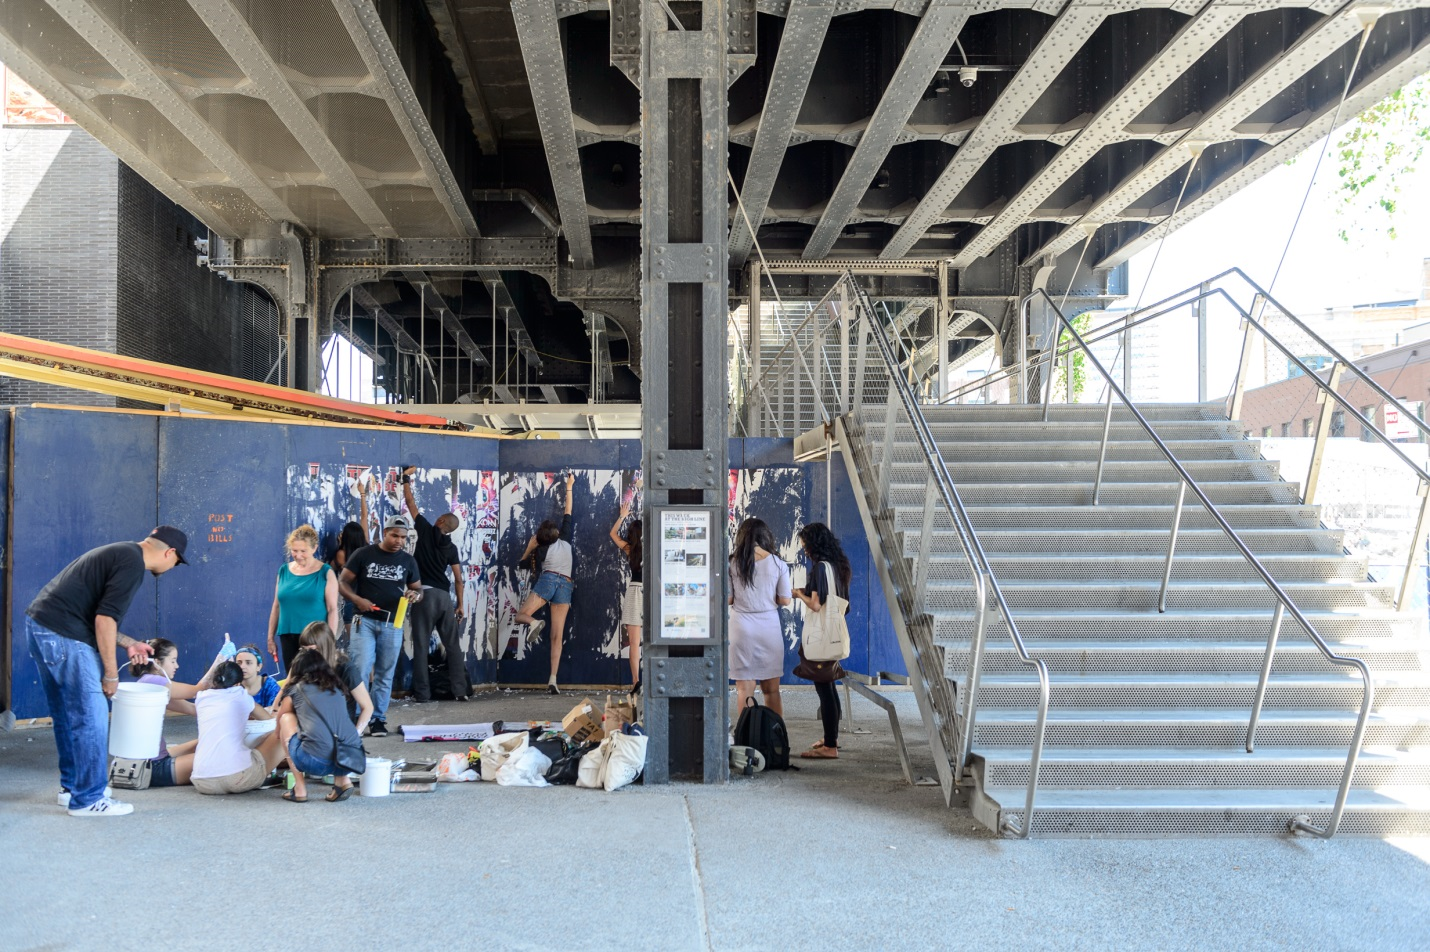 Students putting up posters near the High Line